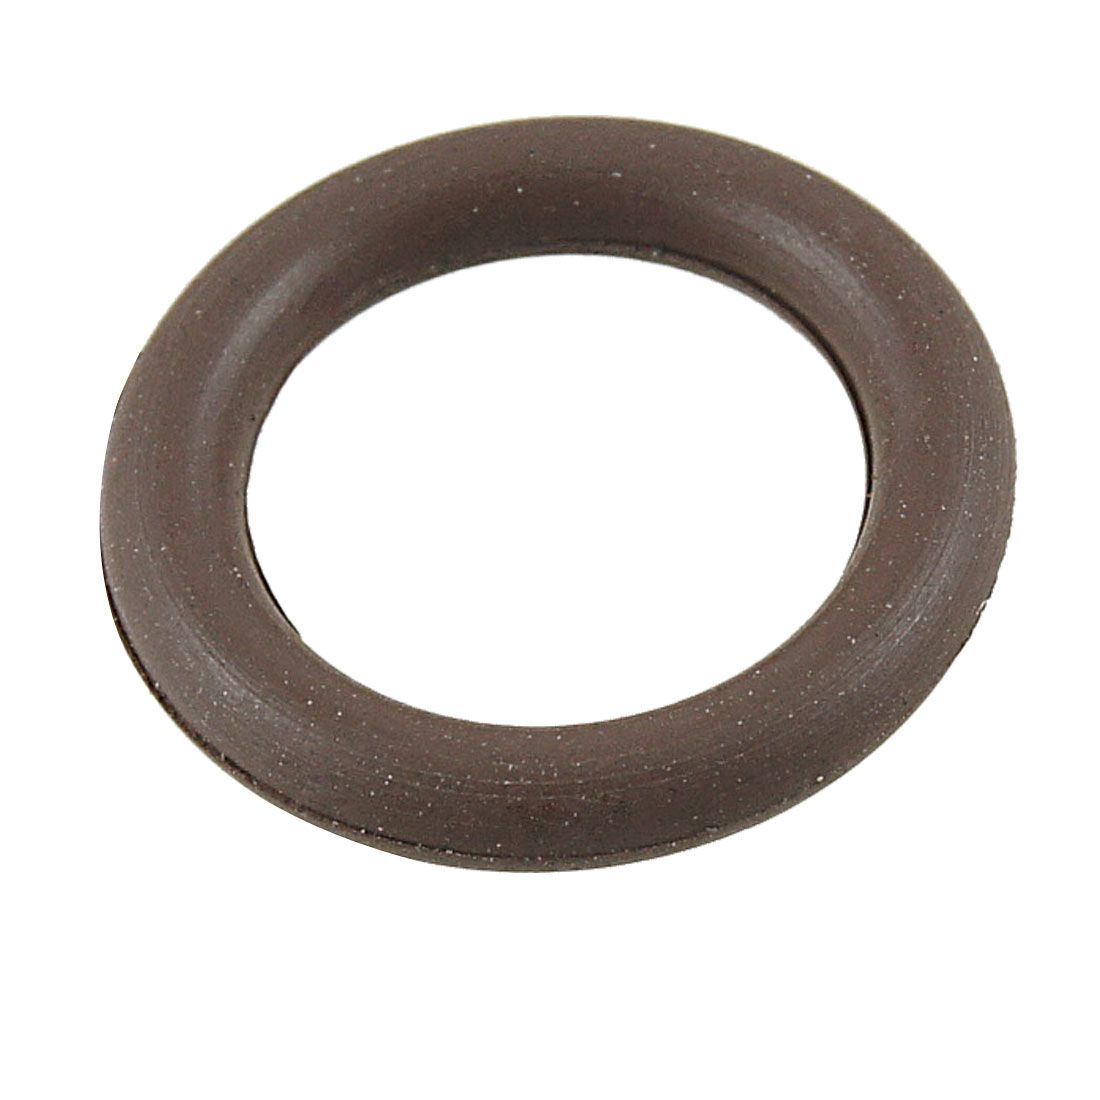 Fluorine Rubber O Ring Oil Sealing Gaskets 16mm x 11mm x 2.5mm